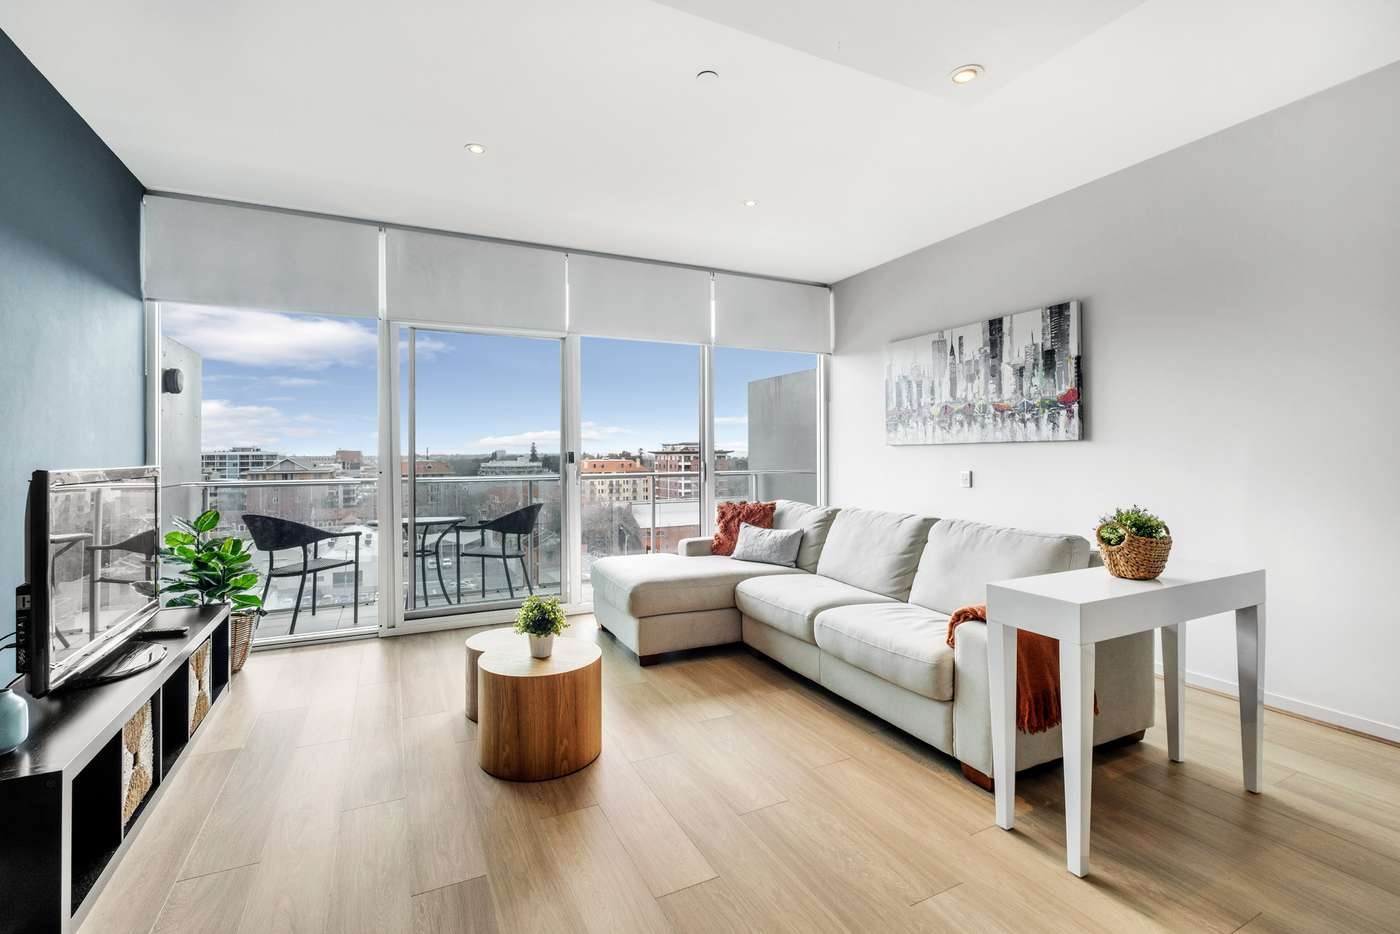 Fifth view of Homely apartment listing, 15/261 Pirie Street, Adelaide SA 5000